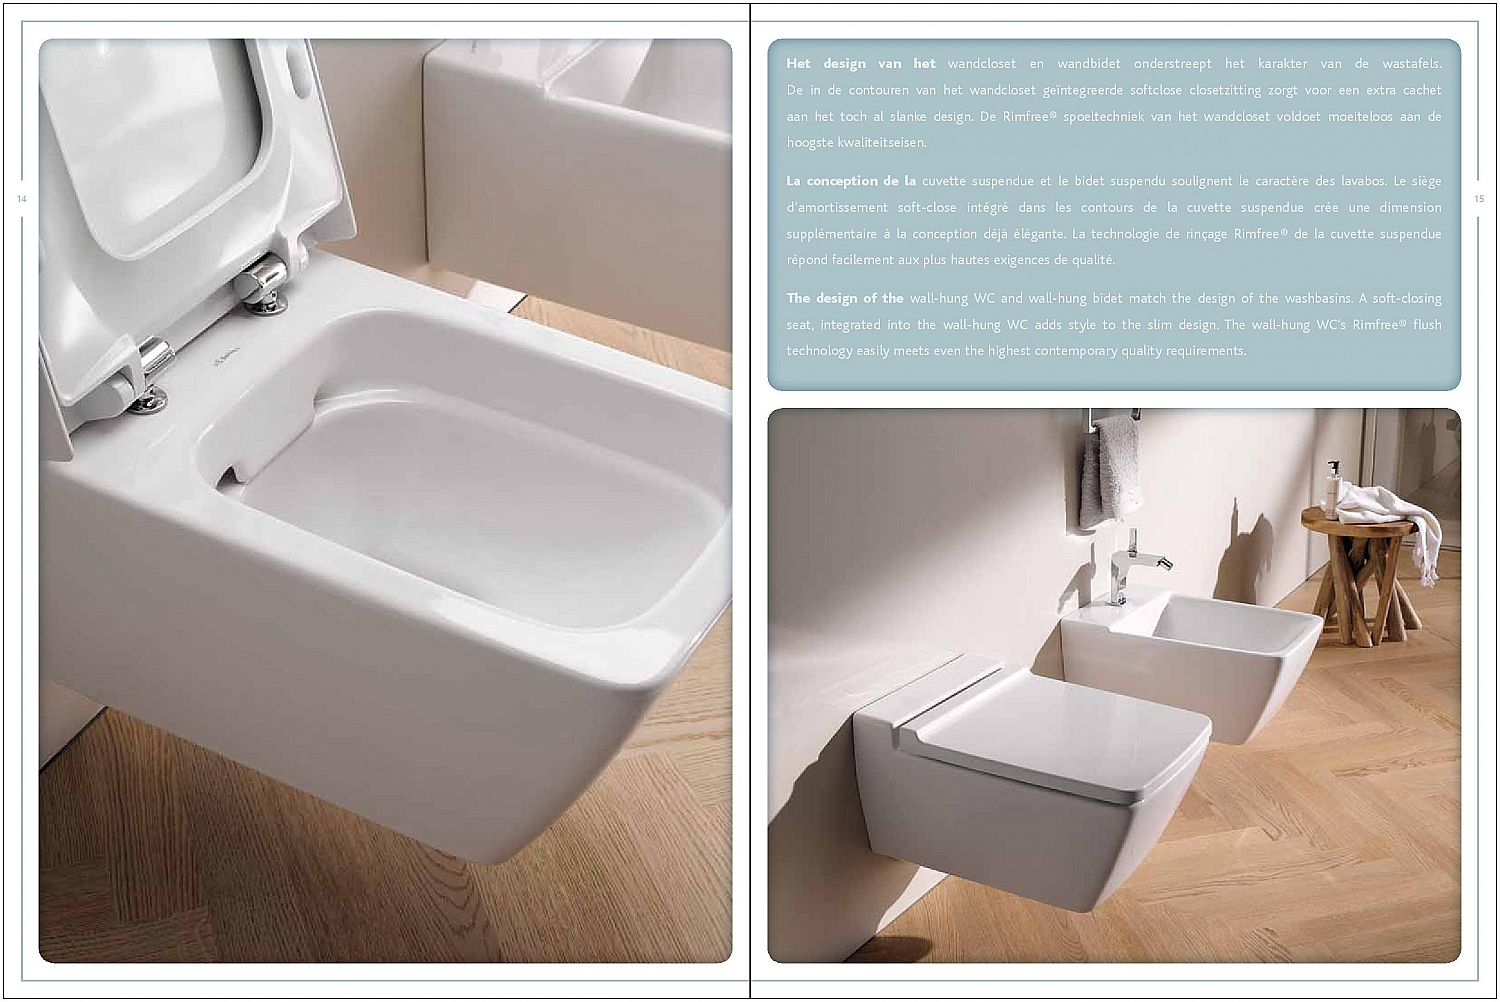 Sphinx Kiwa Toilet : Sphinx 420 new wandcloset diepspoel rimfree 54cm wit s8204400000